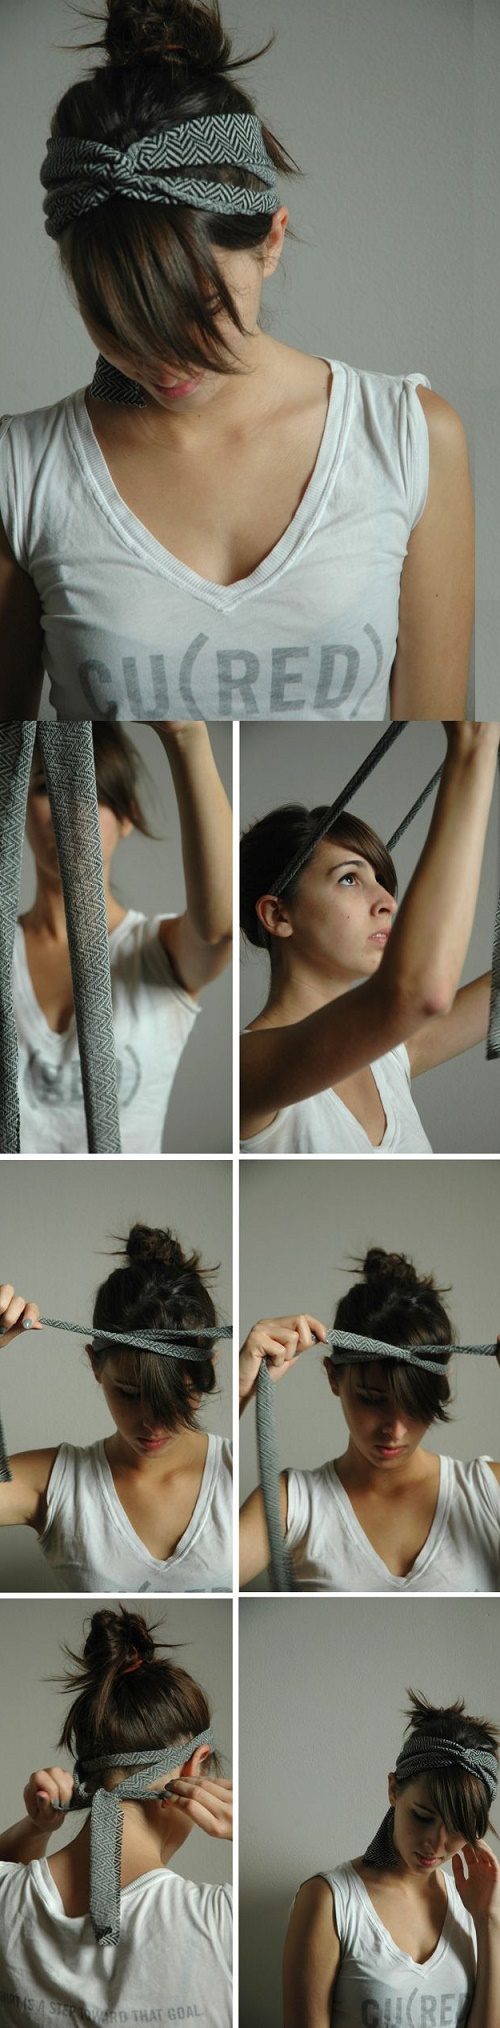 hairstyle gym3